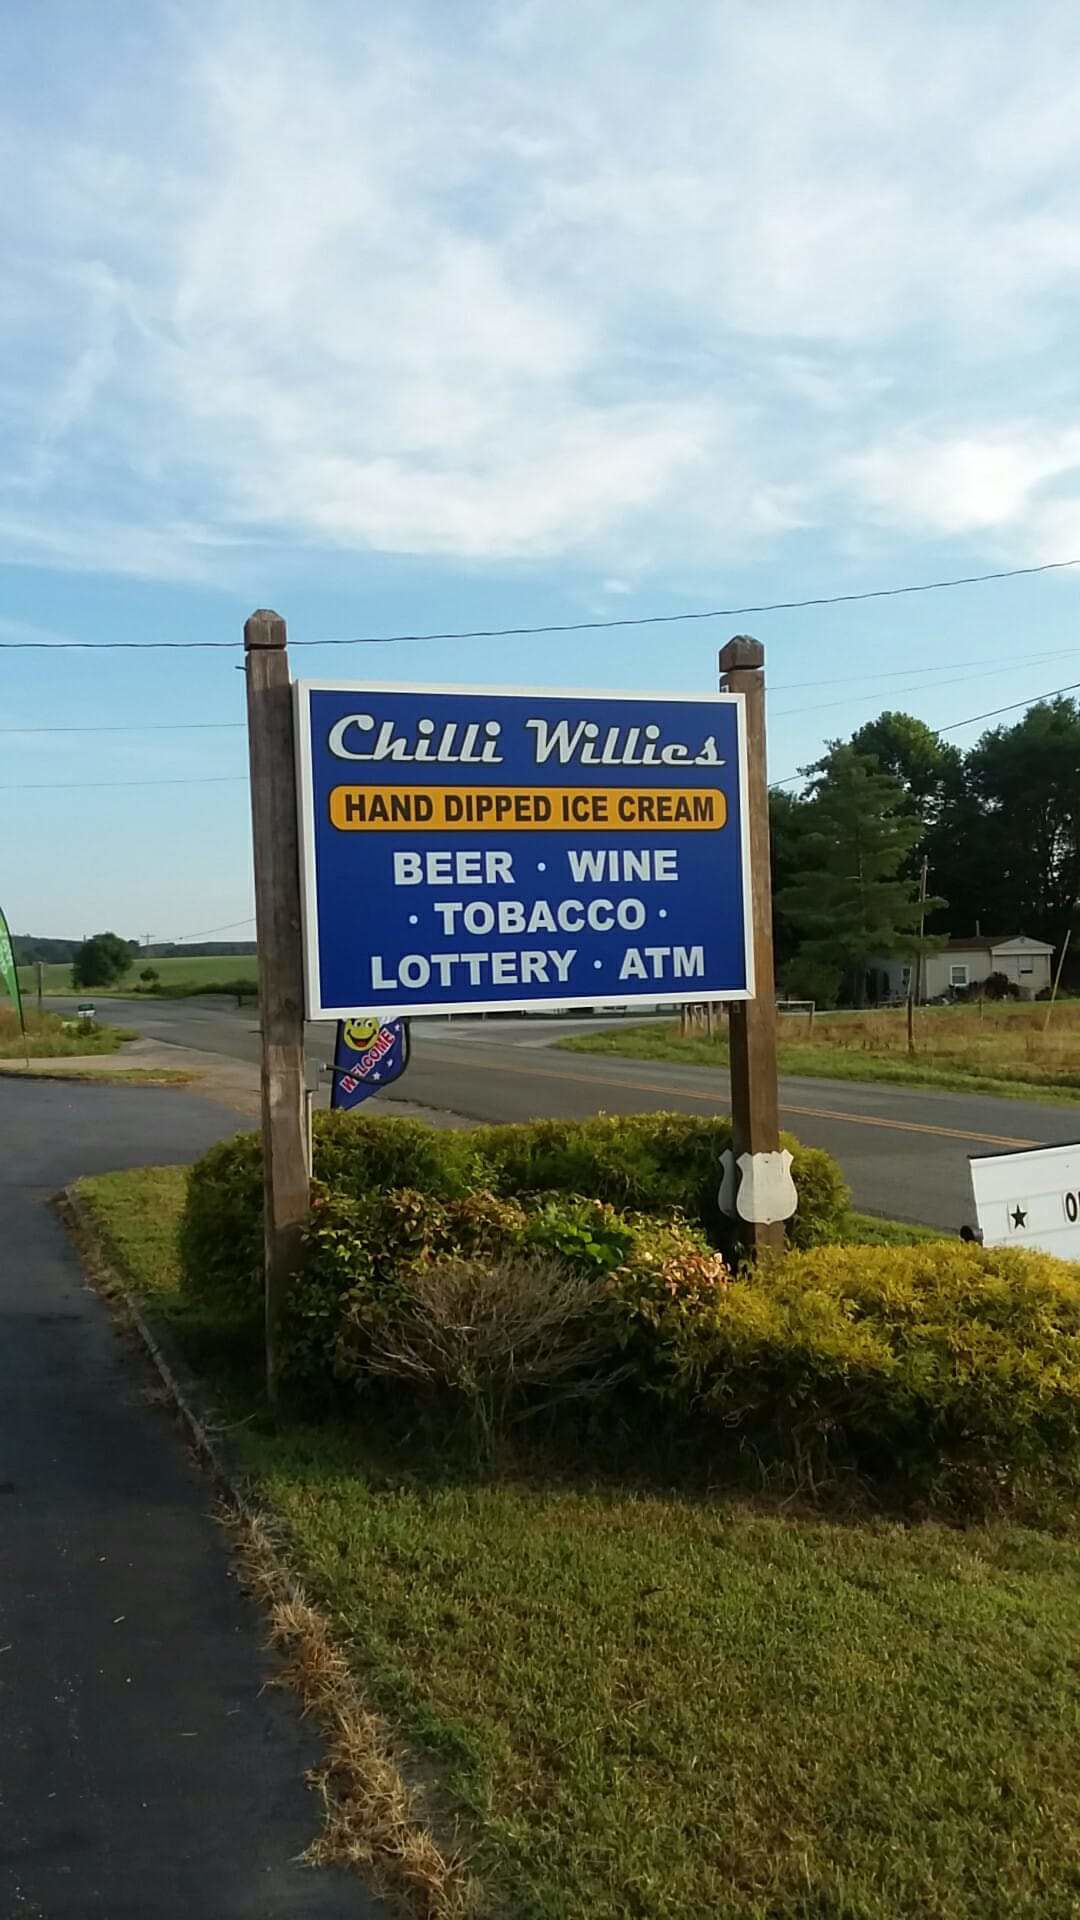 Small Business Spotlight: Chilli Willies brings new options, helps support local economy